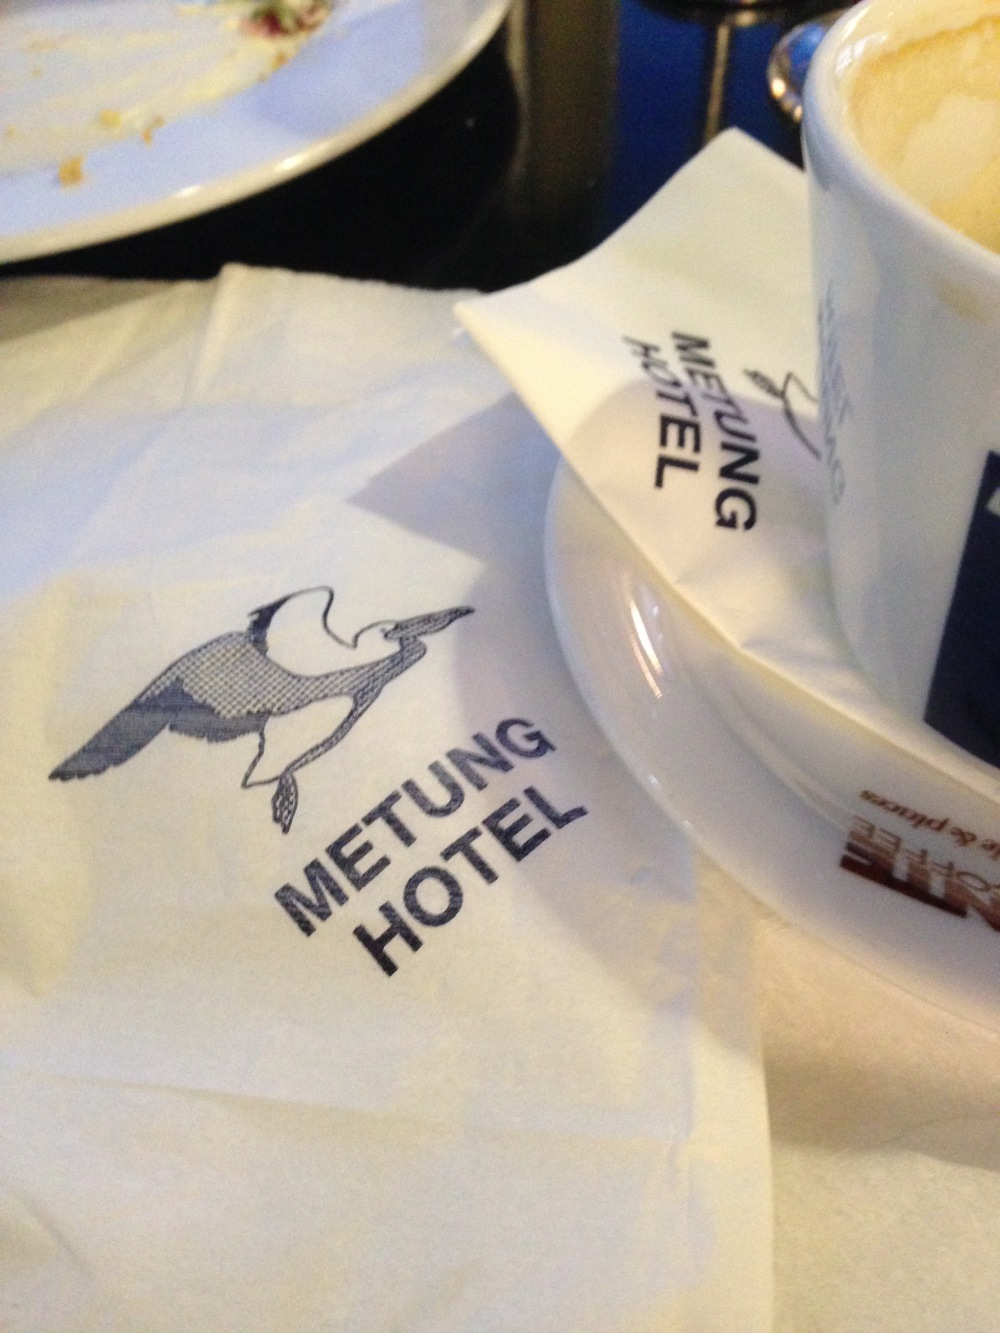 The Metung Hotel